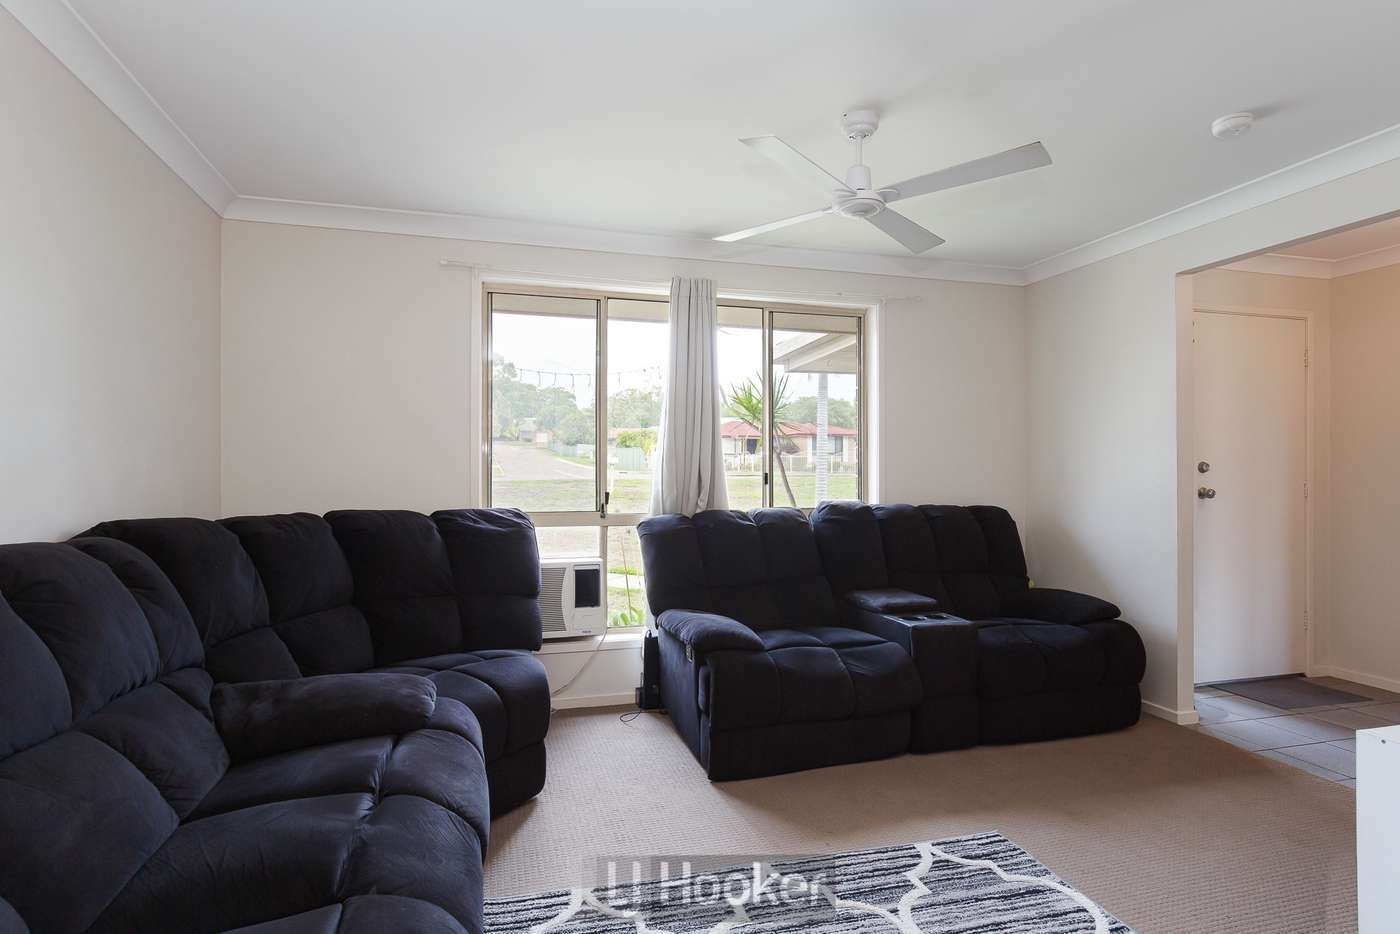 Sixth view of Homely house listing, 61 Rosemary Row, Rathmines NSW 2283